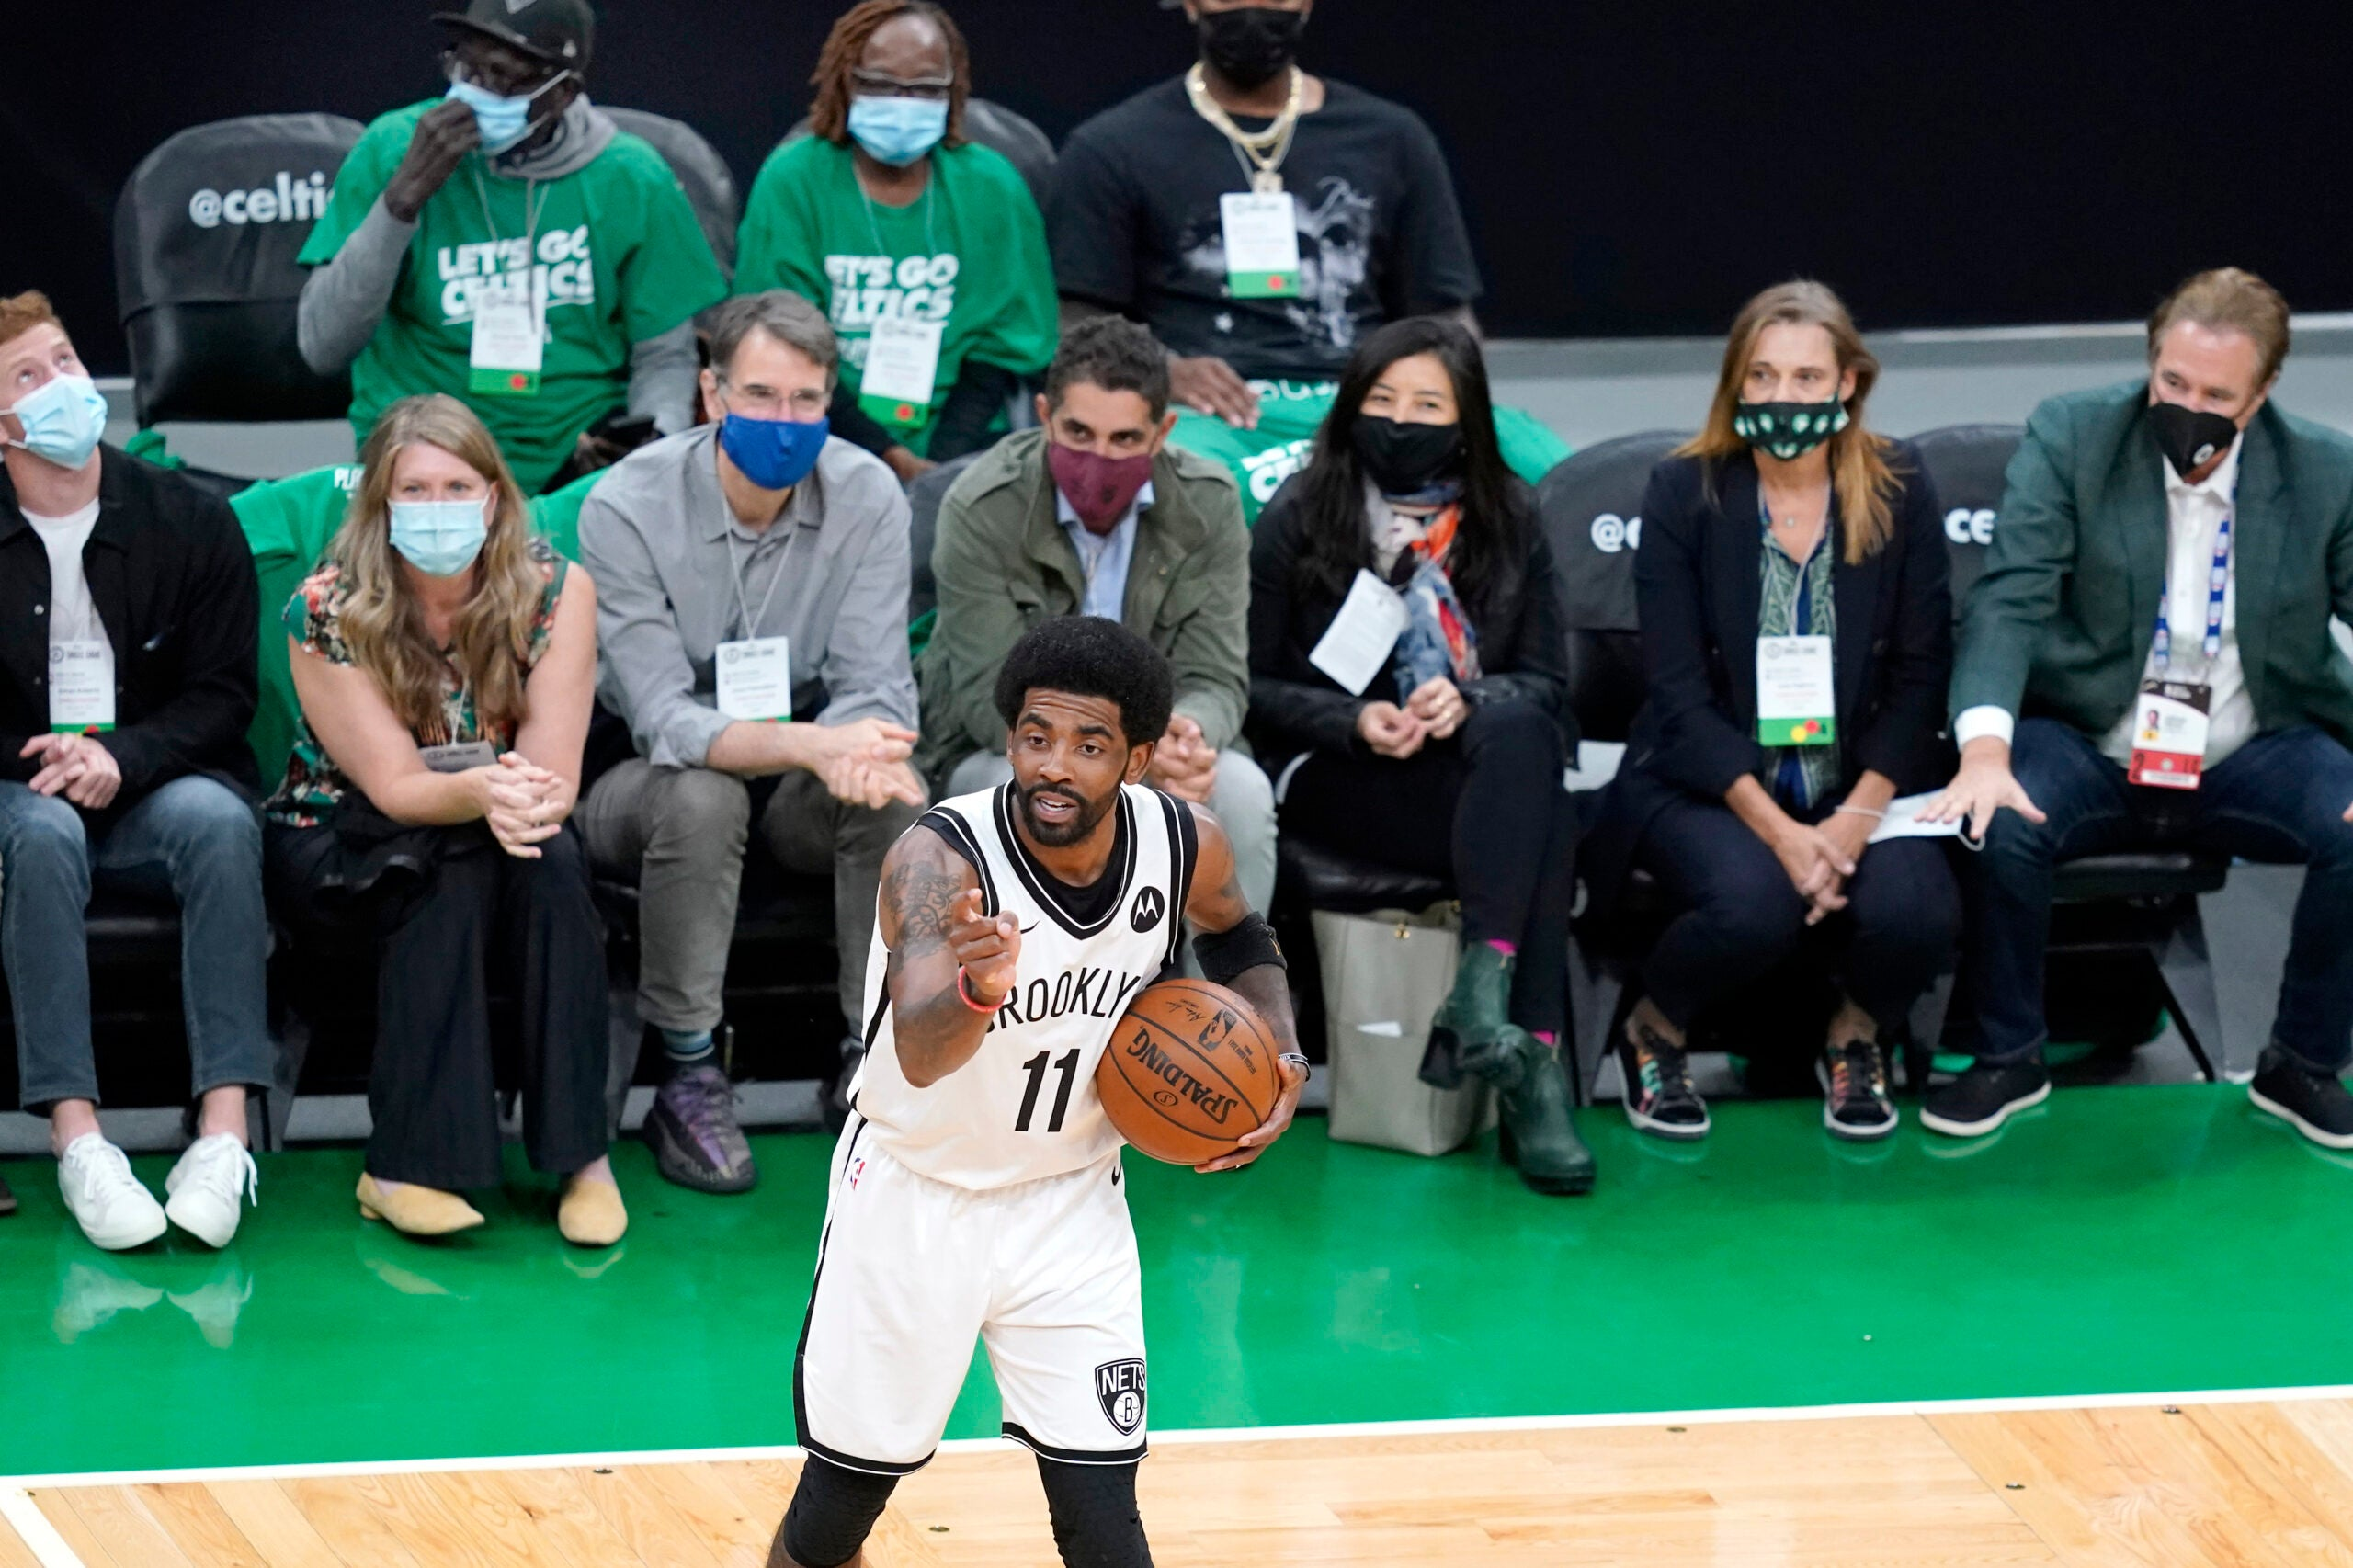 'I've been in a few environments in my life': Kyrie Irving reacts to his Boston return in front of fans - Boston.com